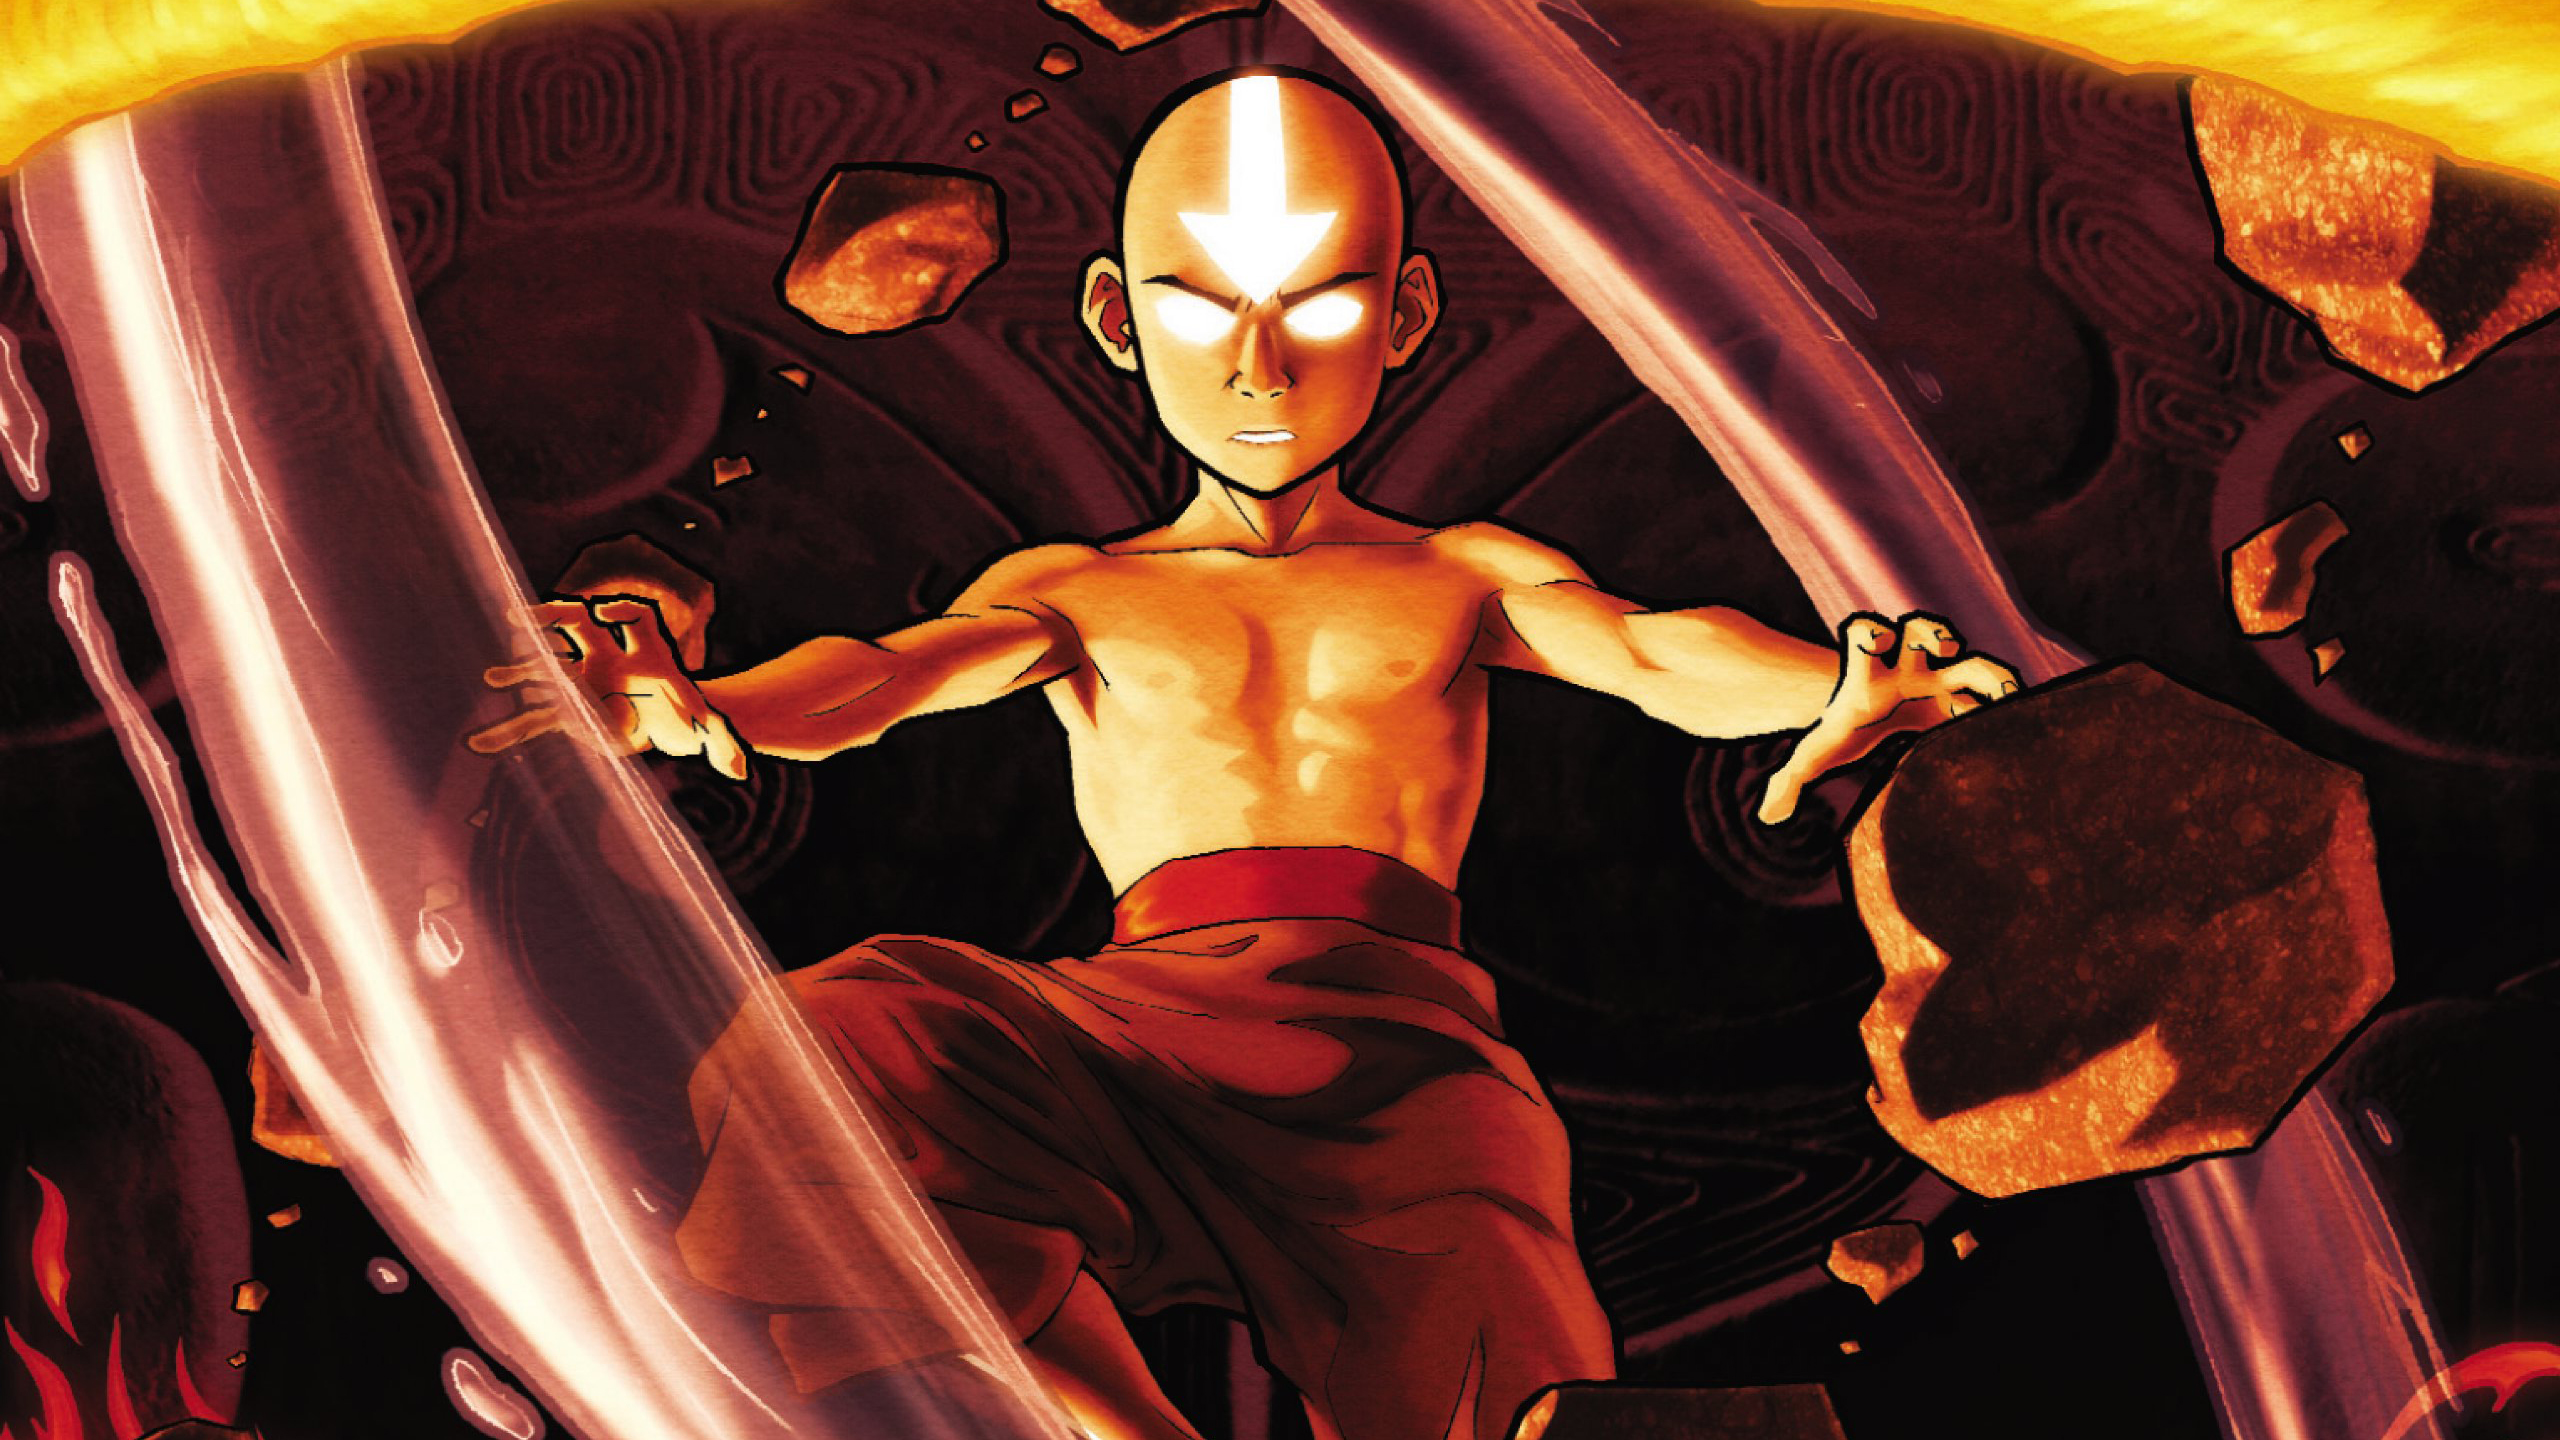 Tags Anime Avatar The Last Airbender Aang Facebook Cover DVD